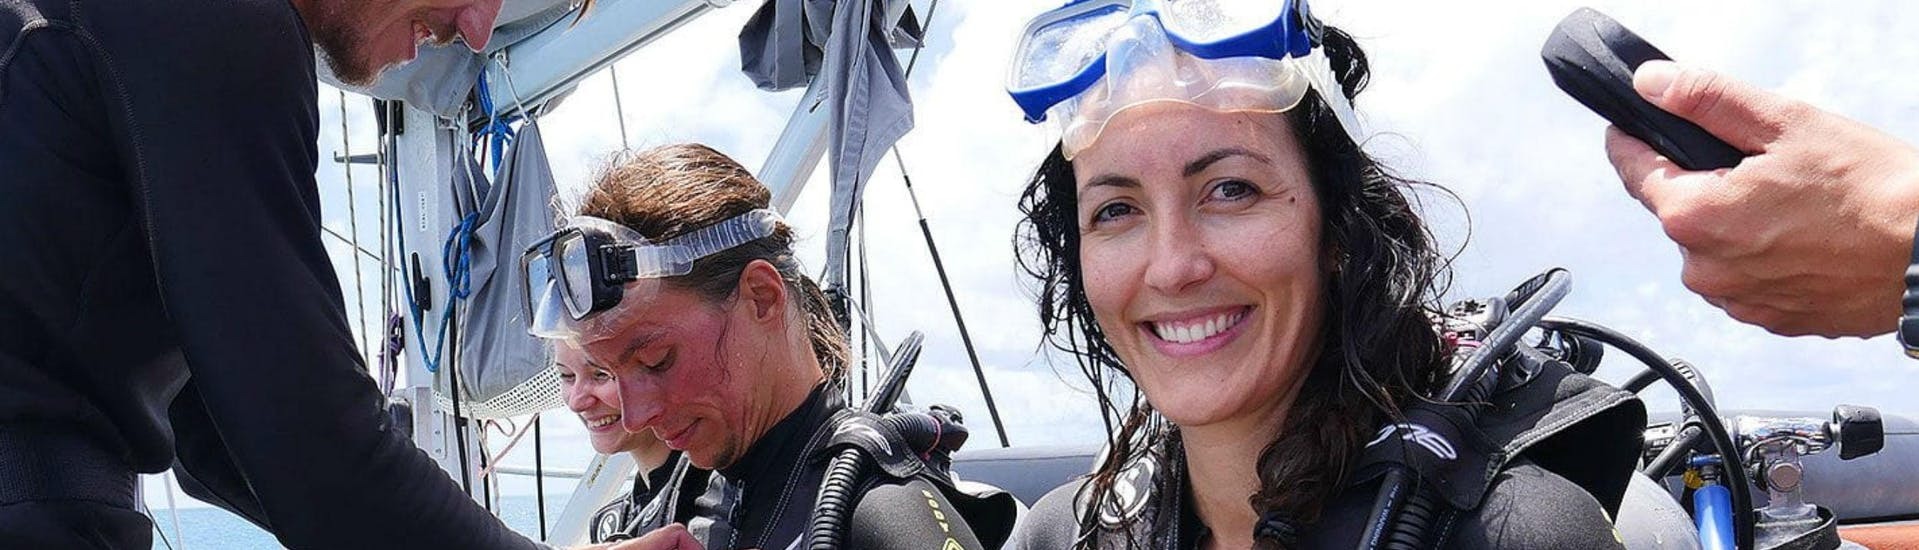 A group of scuba divers is preparing to get into the water for some Beginners' Scuba Diving at the Great Barrier Reef with Ocean Free.